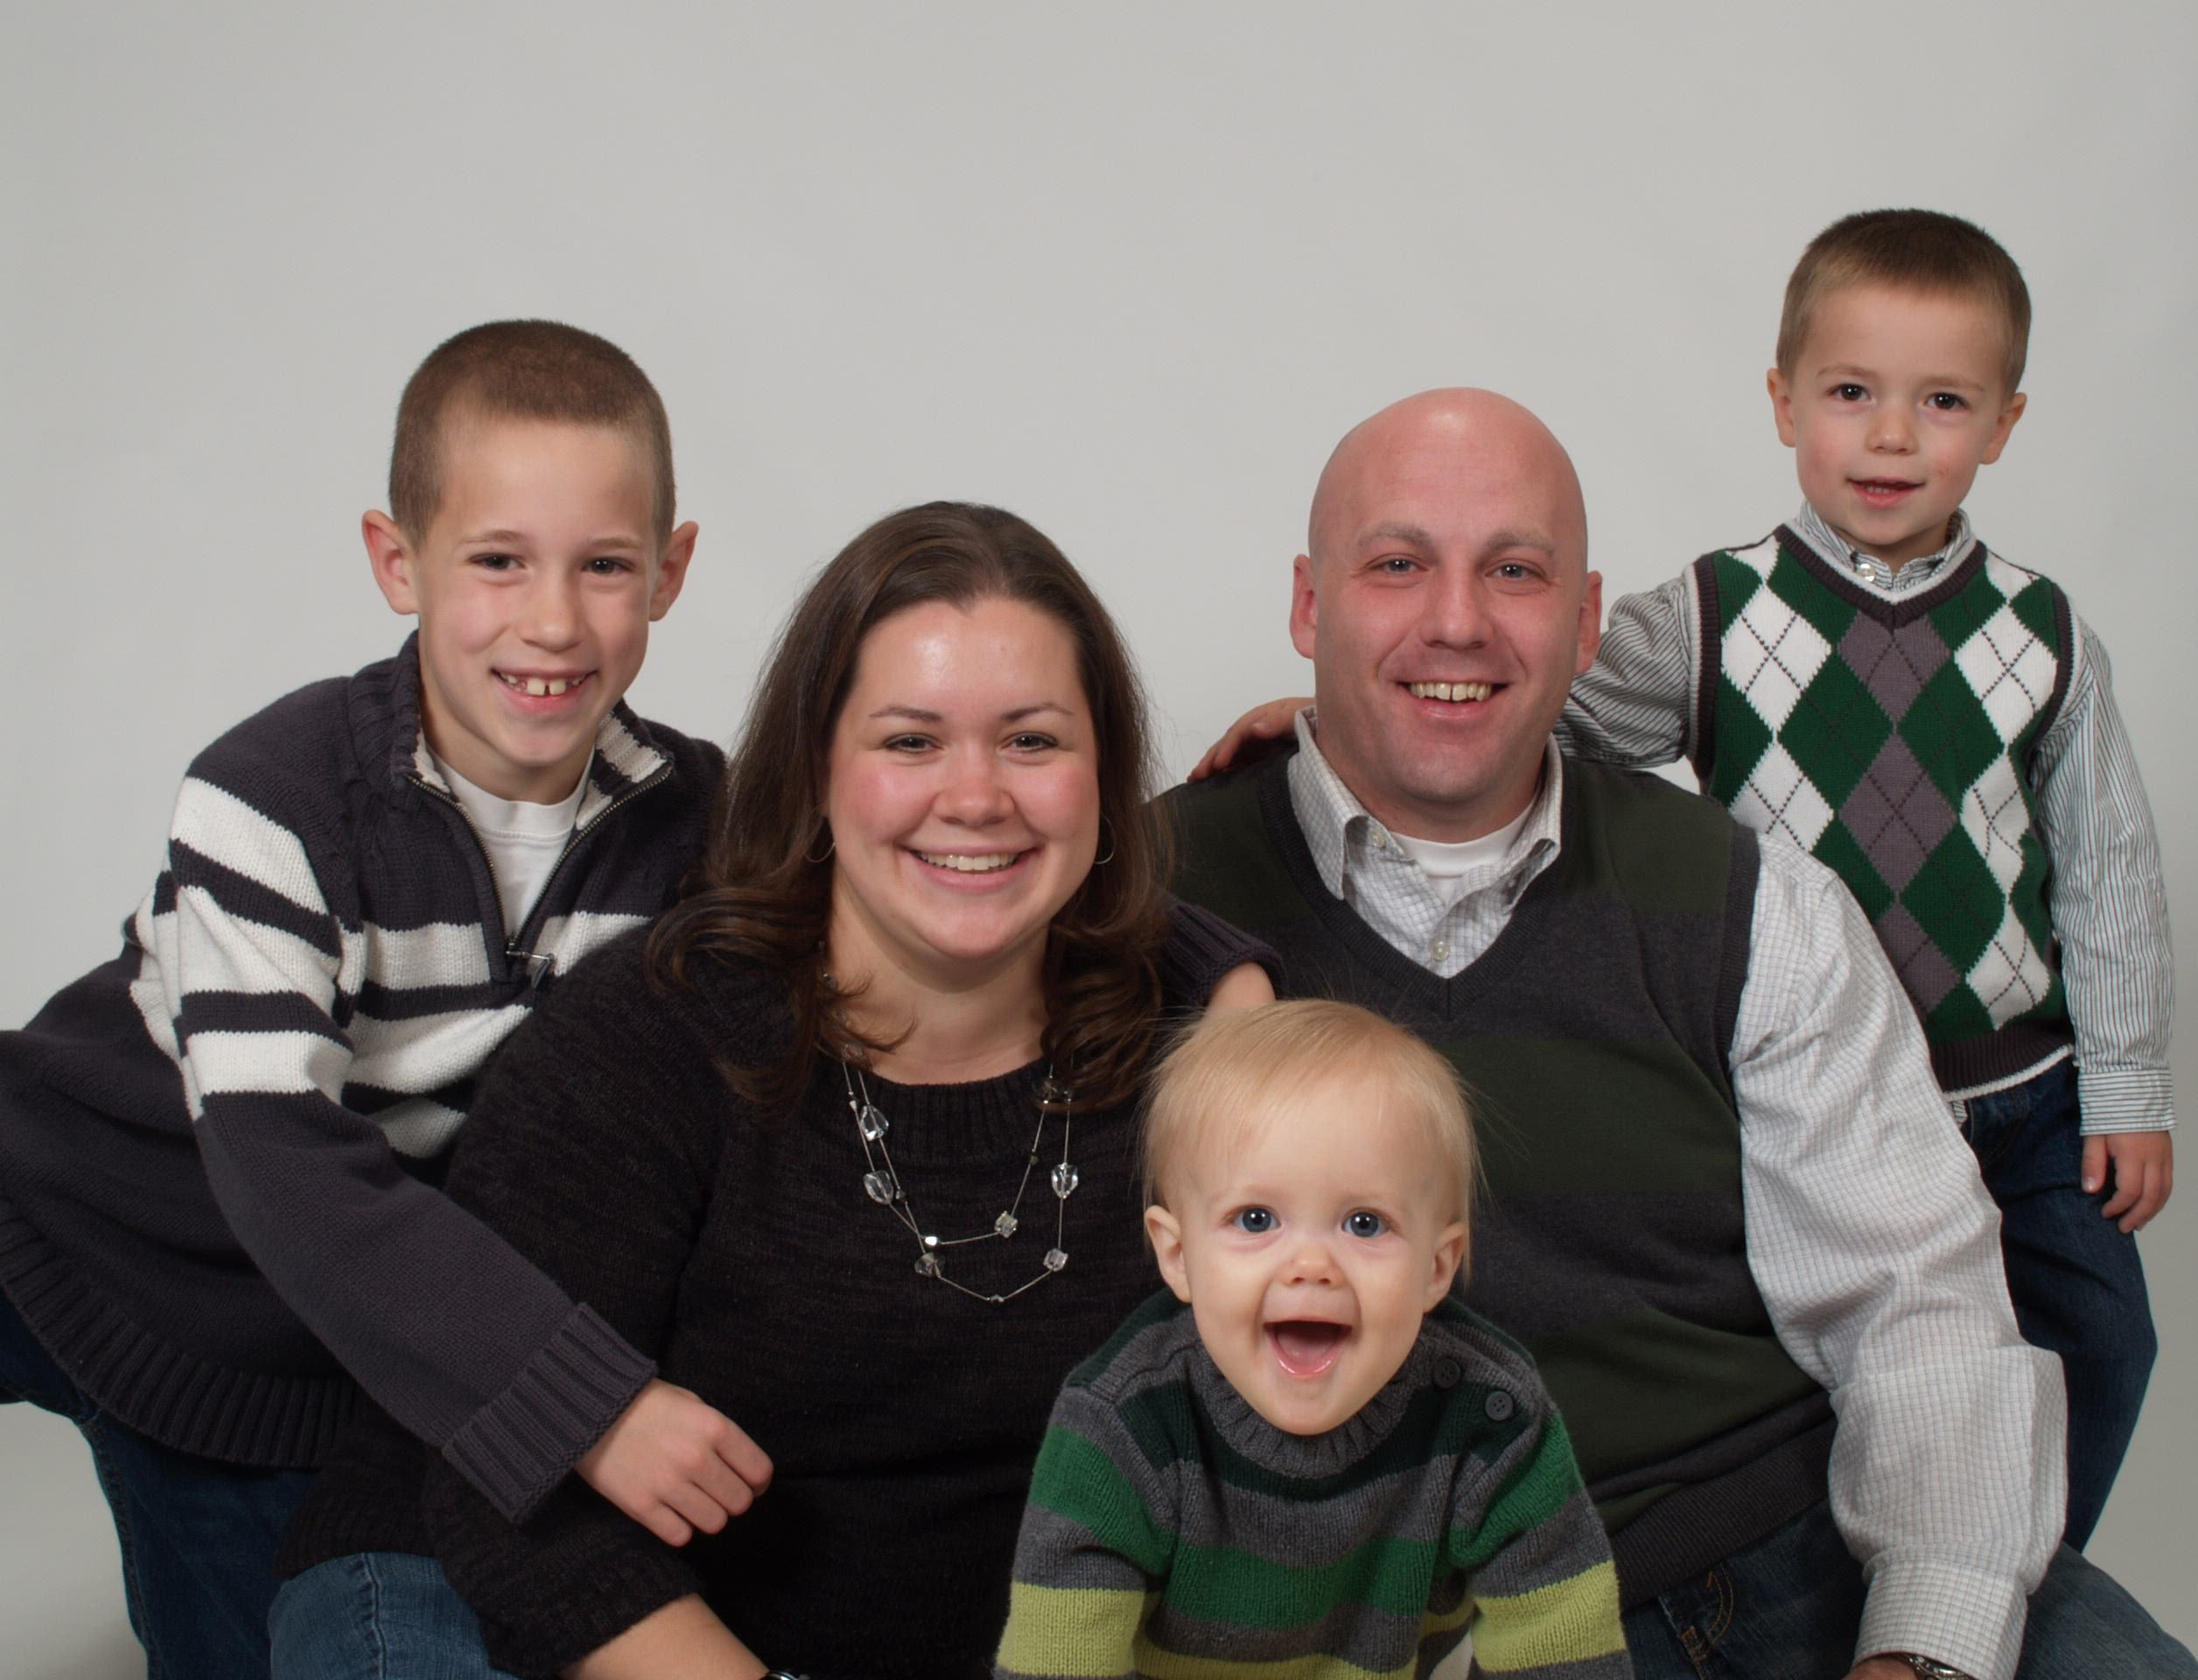 This is a photo of our pastors, Brad and Lynnsey Klooster and their three boys.